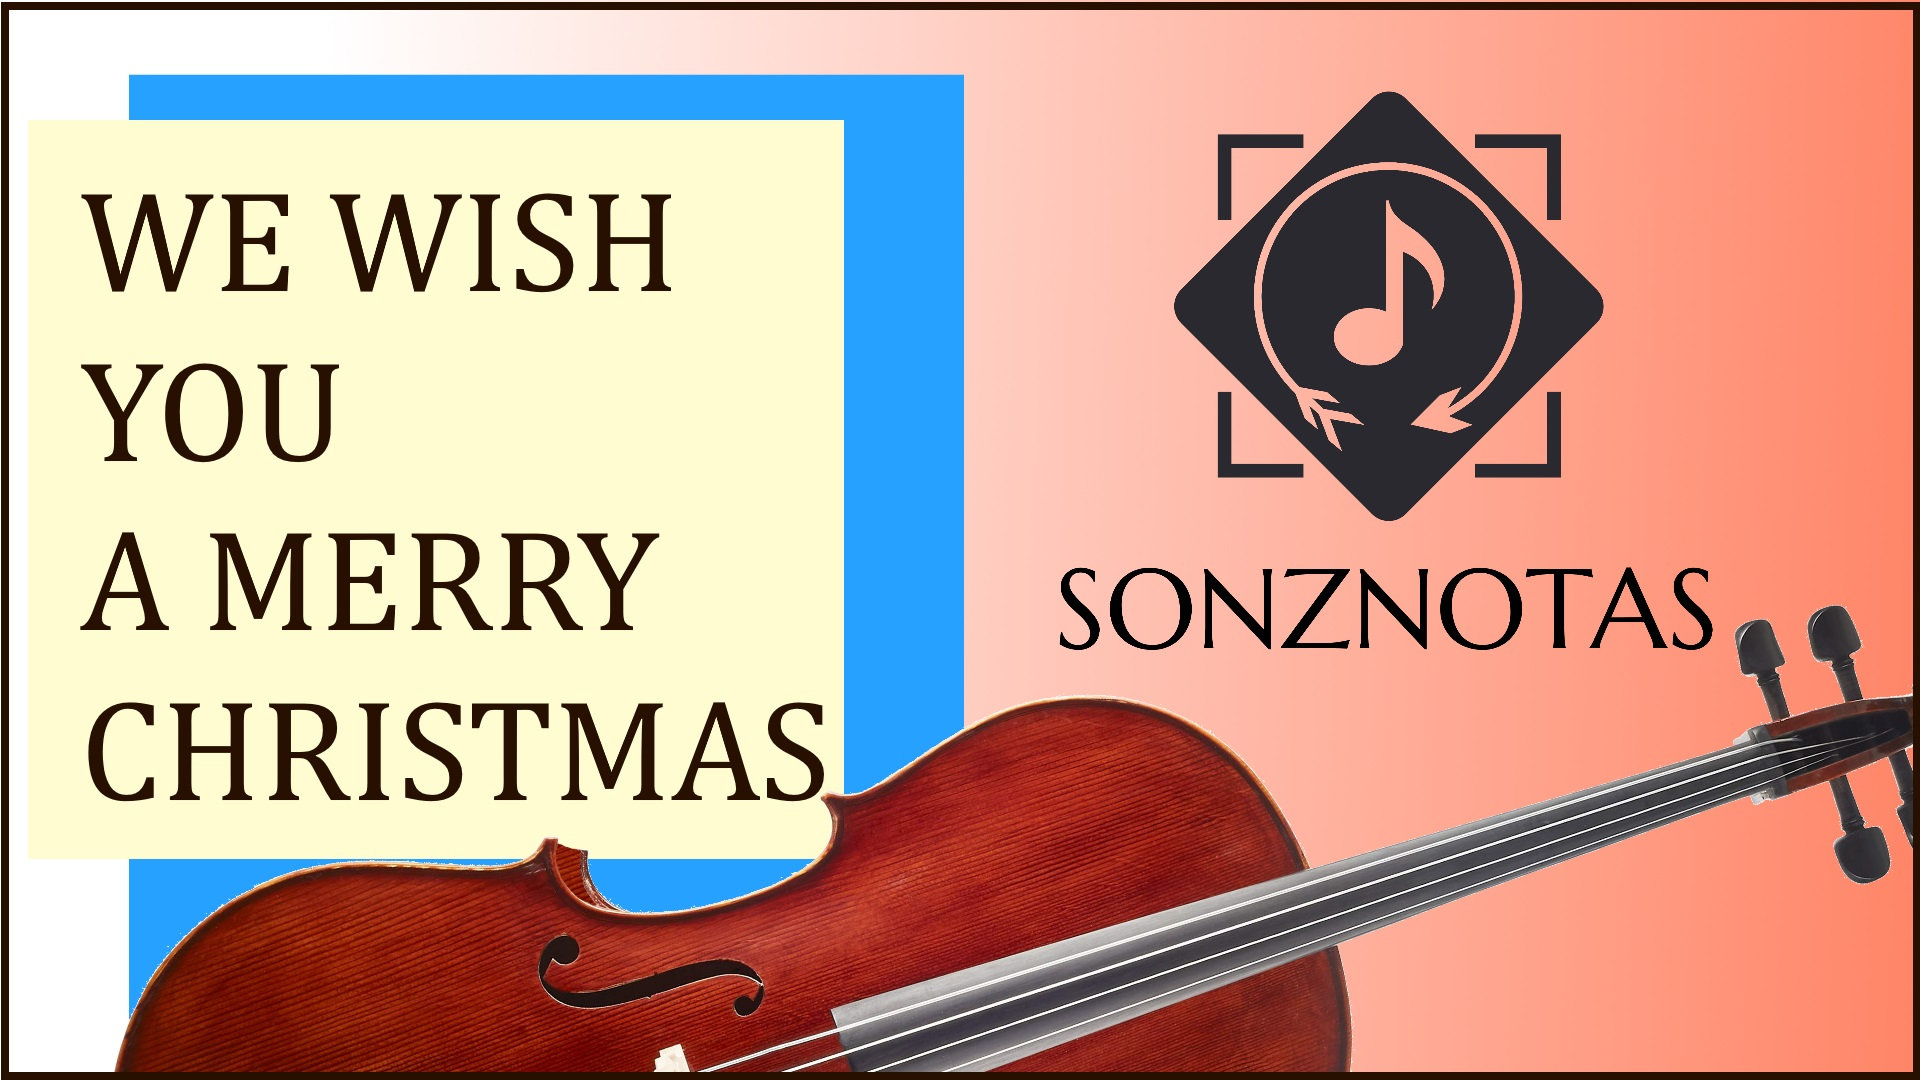 We Wish You a Merry Christmas | Download MP3 Audio | String Orchestra | SONZNOTAS